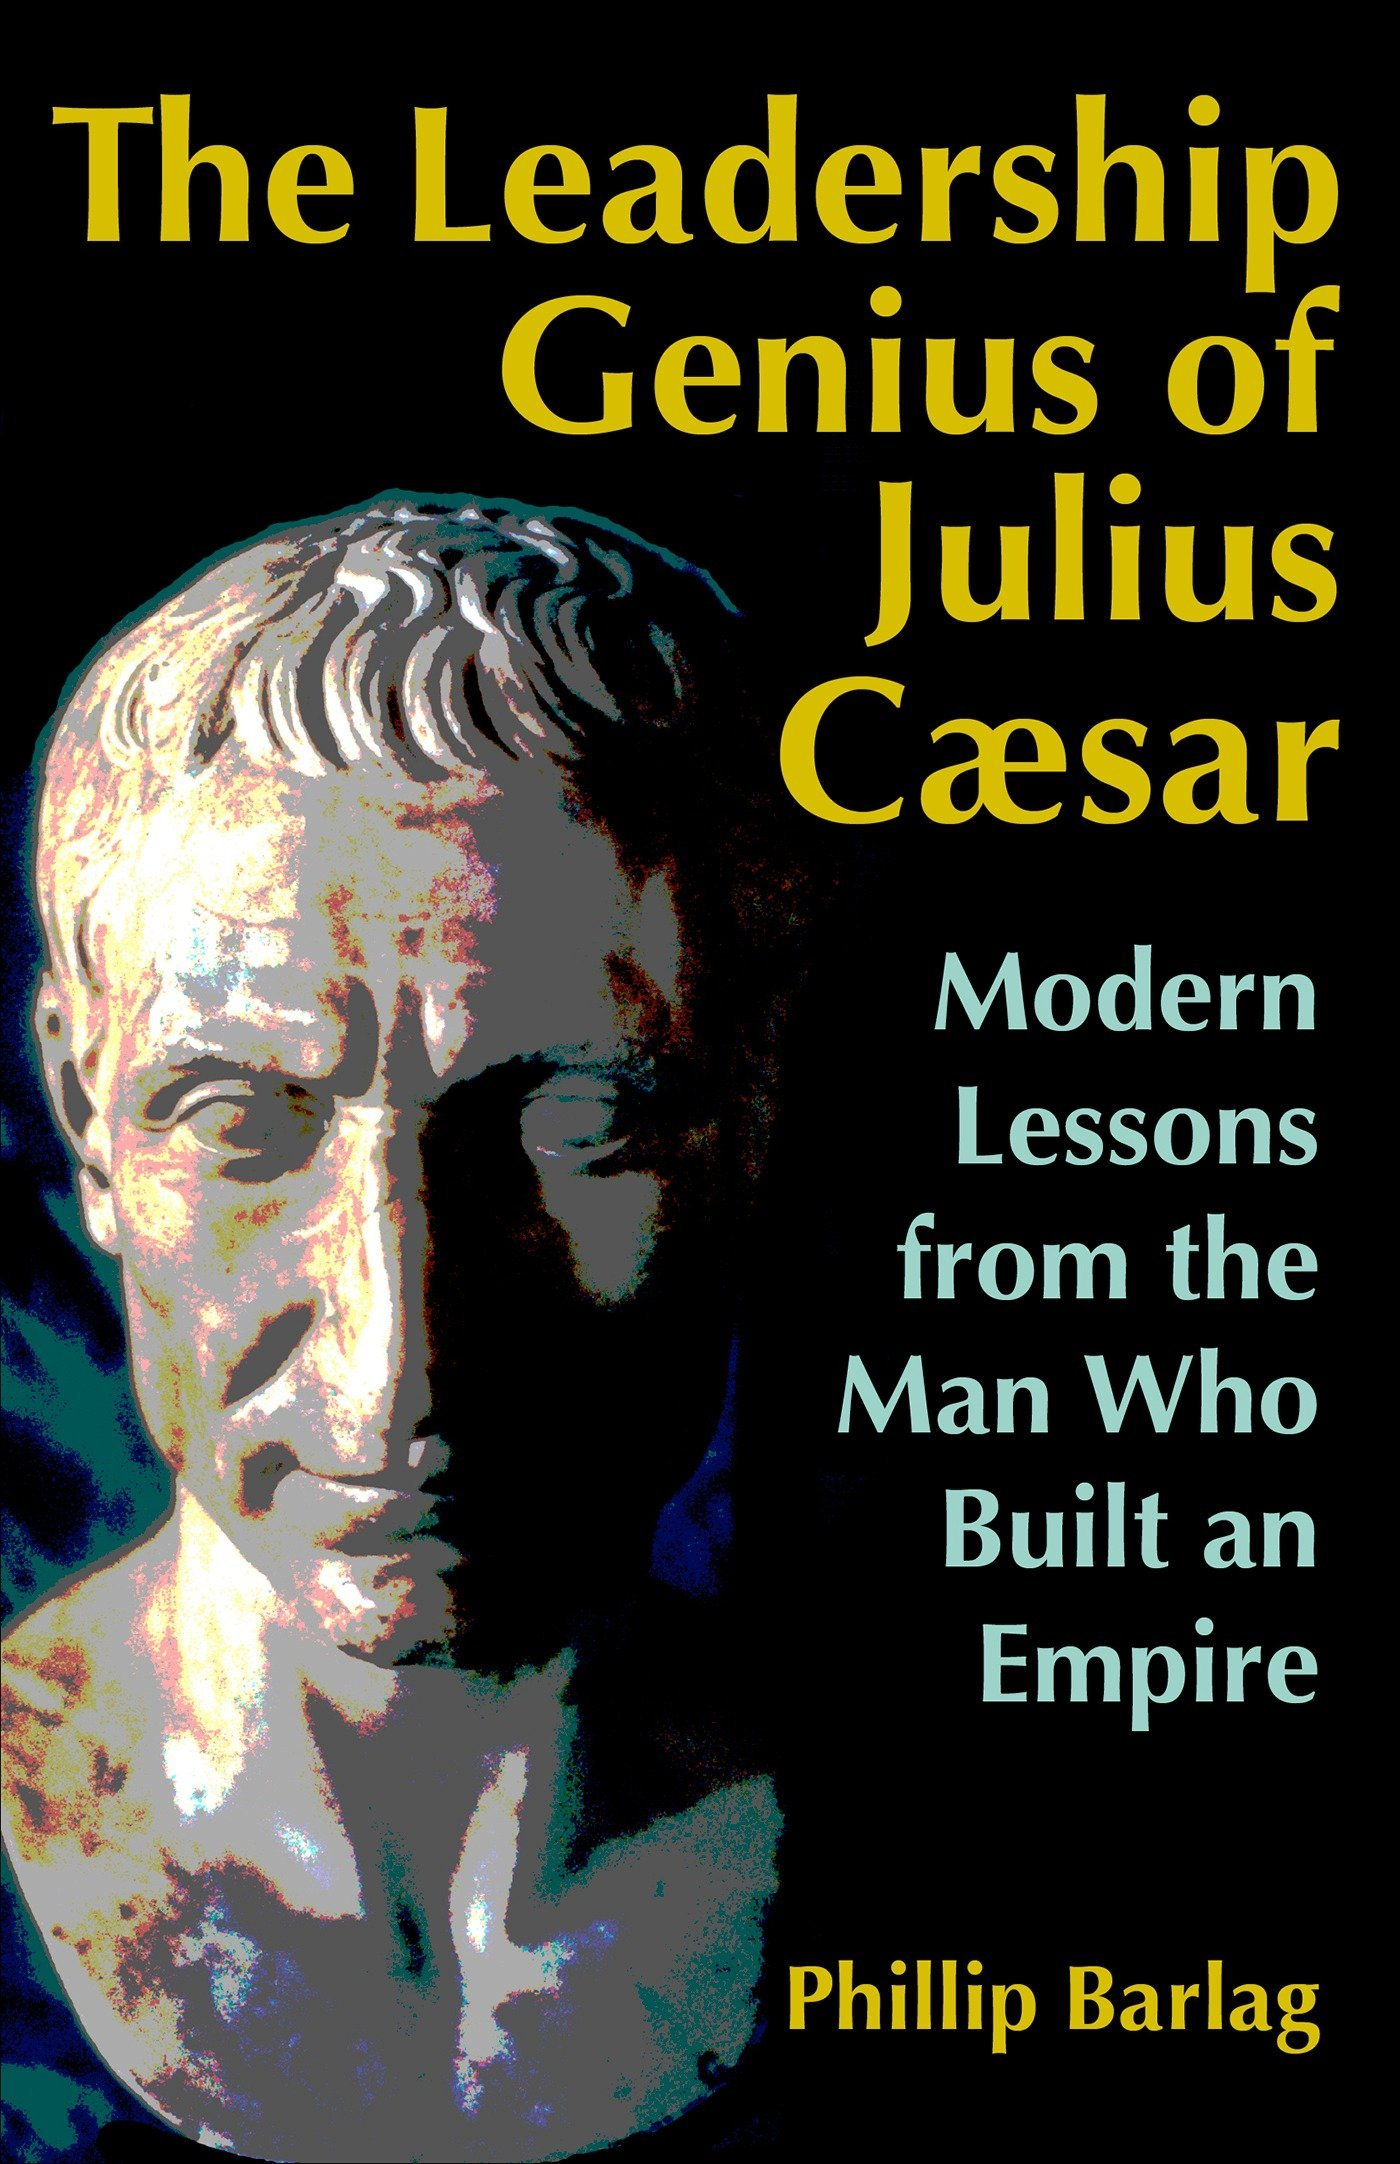 The Leadership Genuis of Julius Caesar